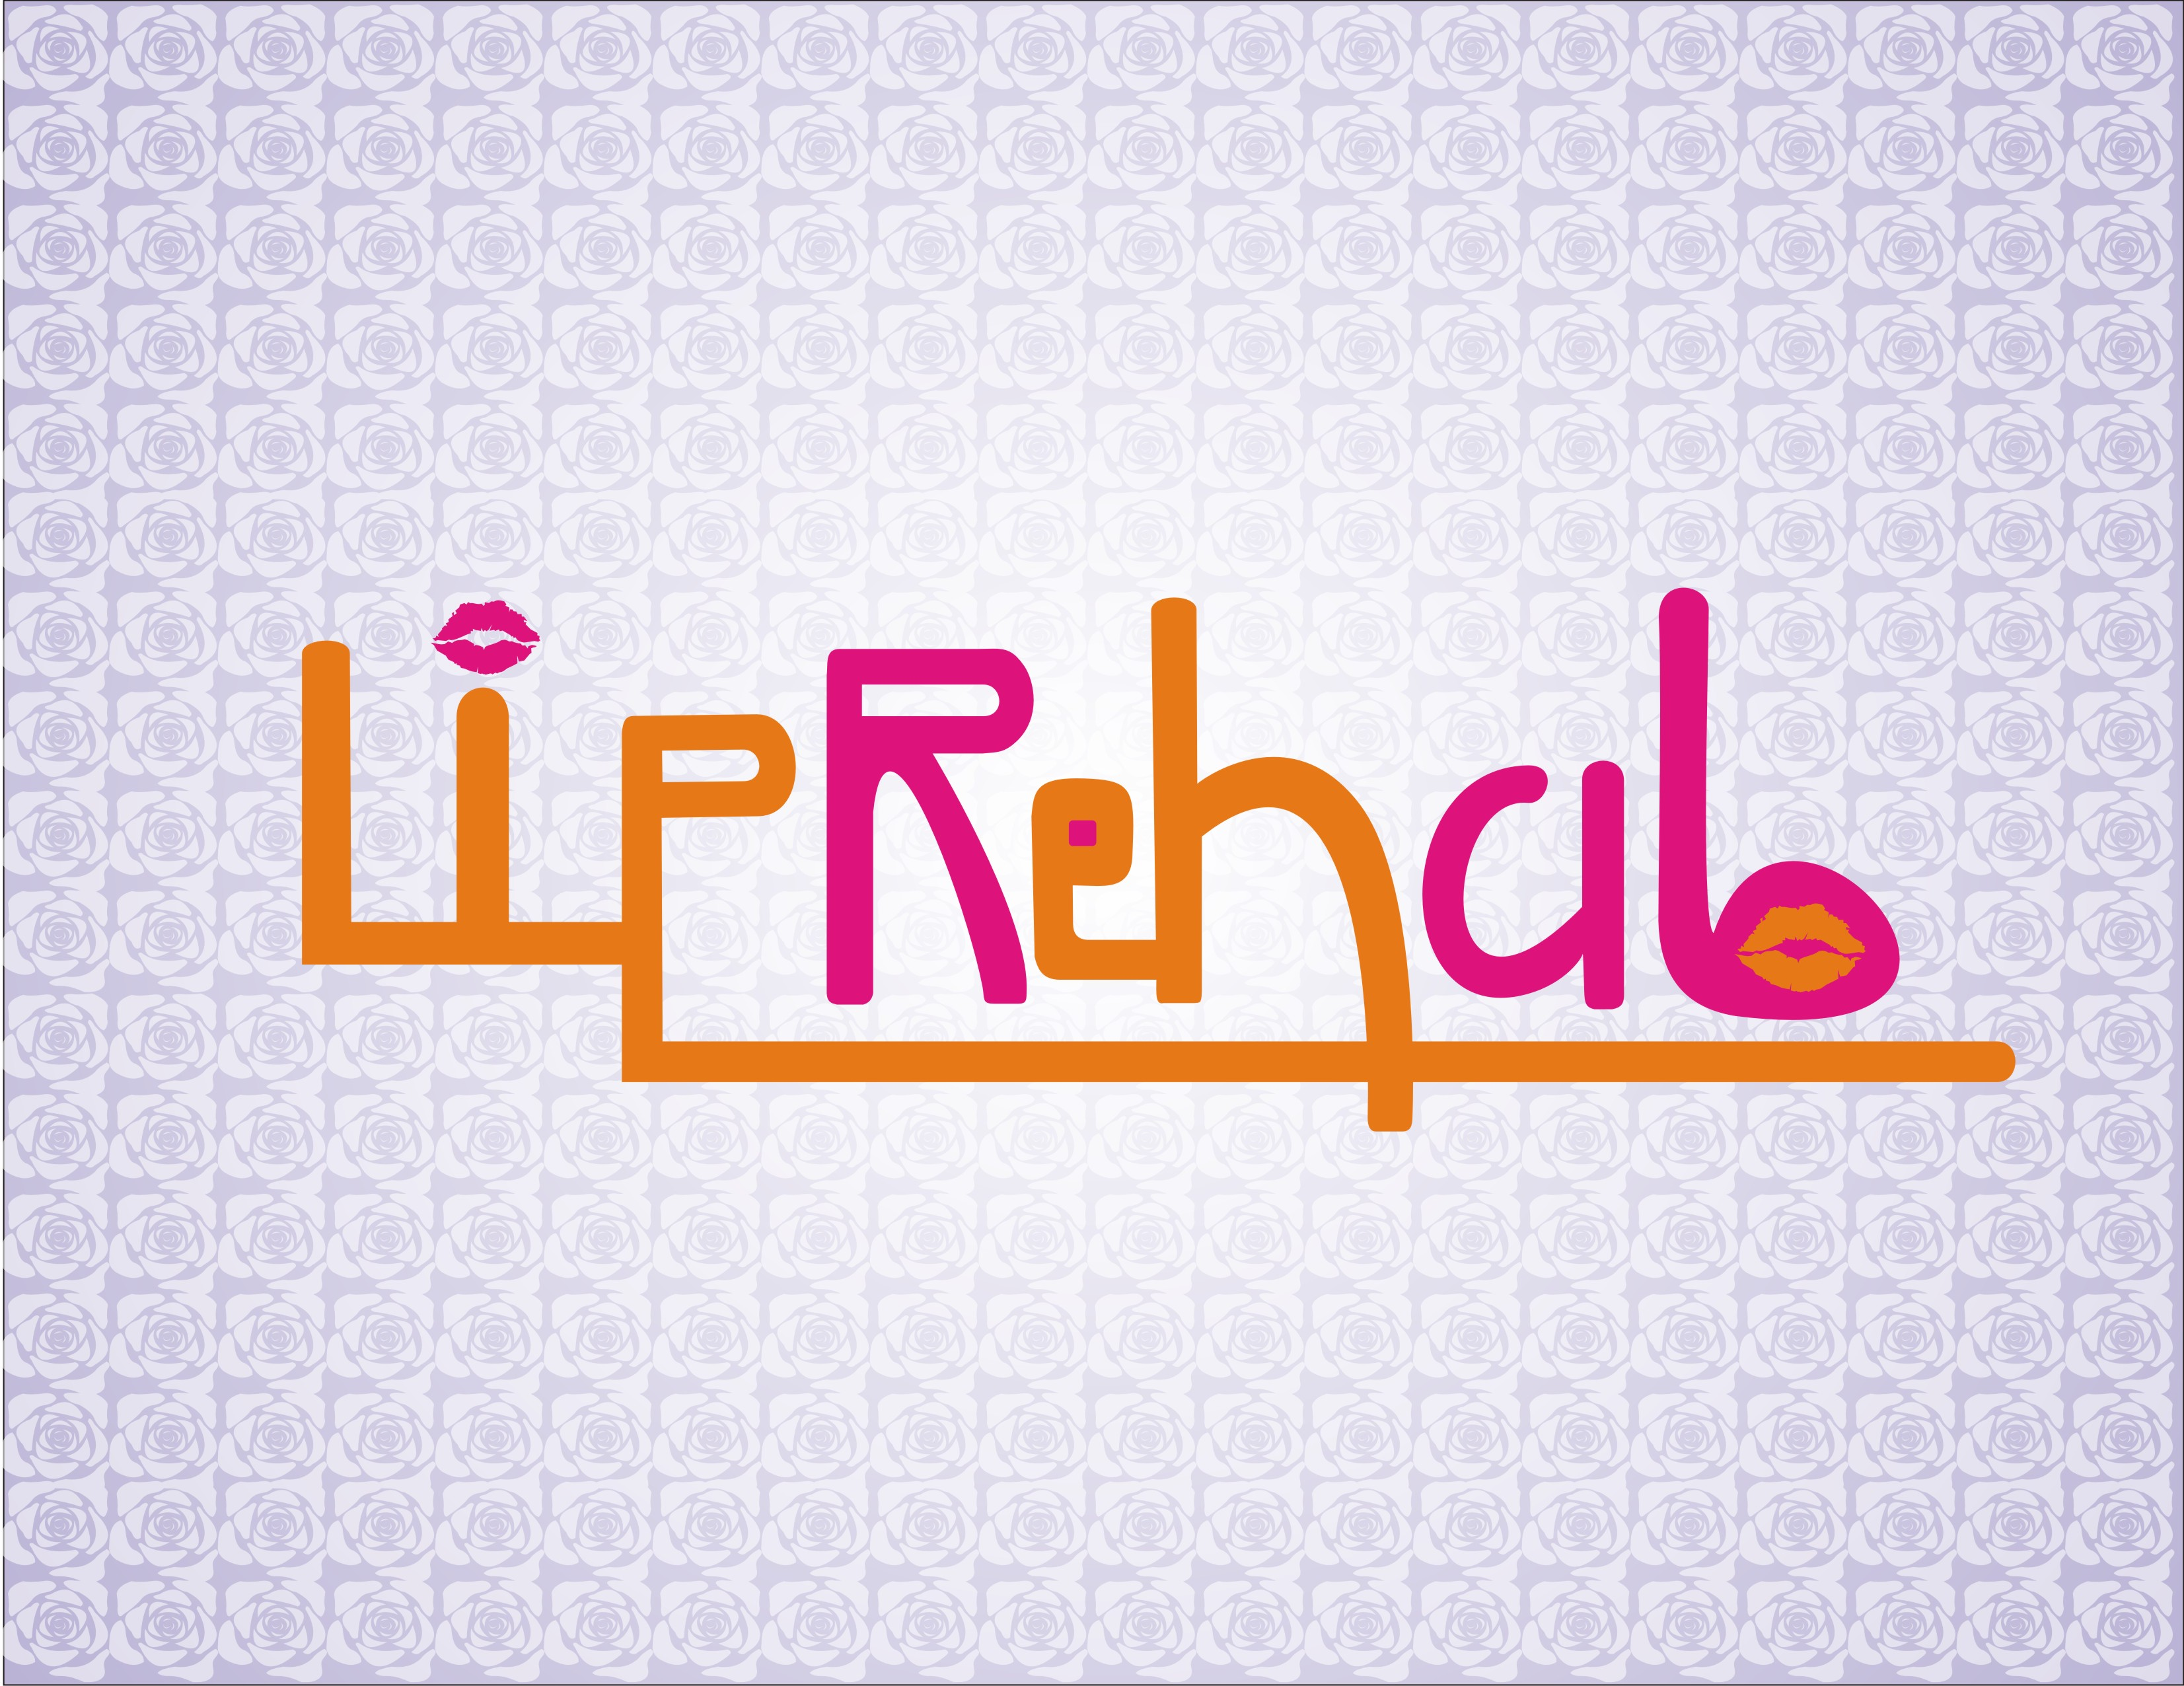 Logo Design by Mahida Kirit Chandrasinh - Entry No. 313 in the Logo Design Contest Creative Logo Design for Lip Rehab.